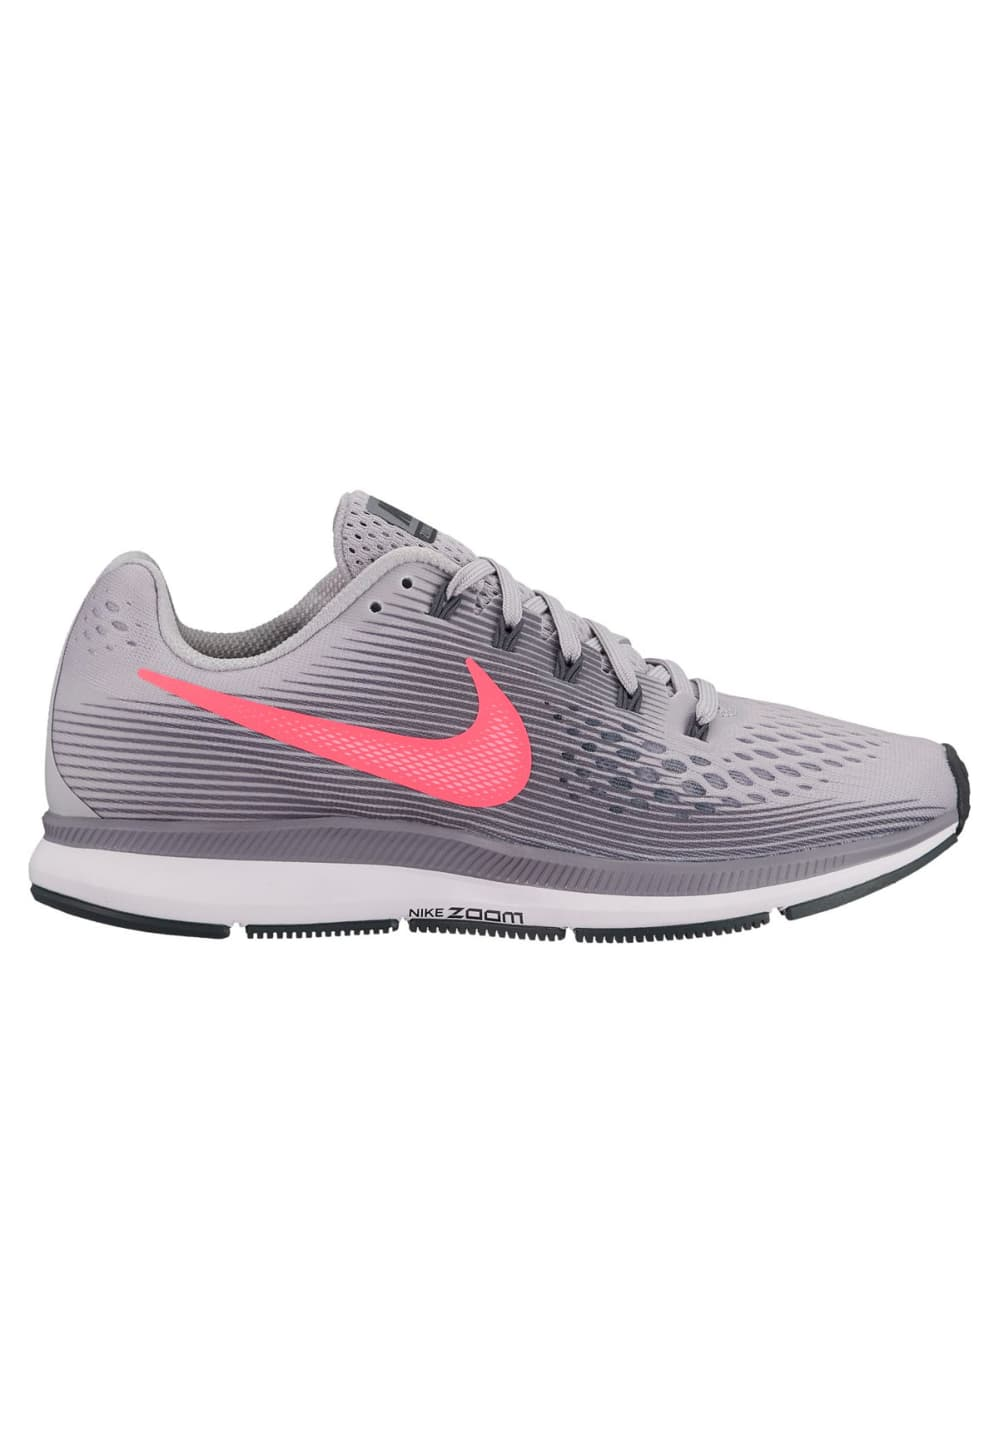 the best attitude abc50 17a81 Nike Air Zoom Pegasus 34 - Running shoes for Women - Grey